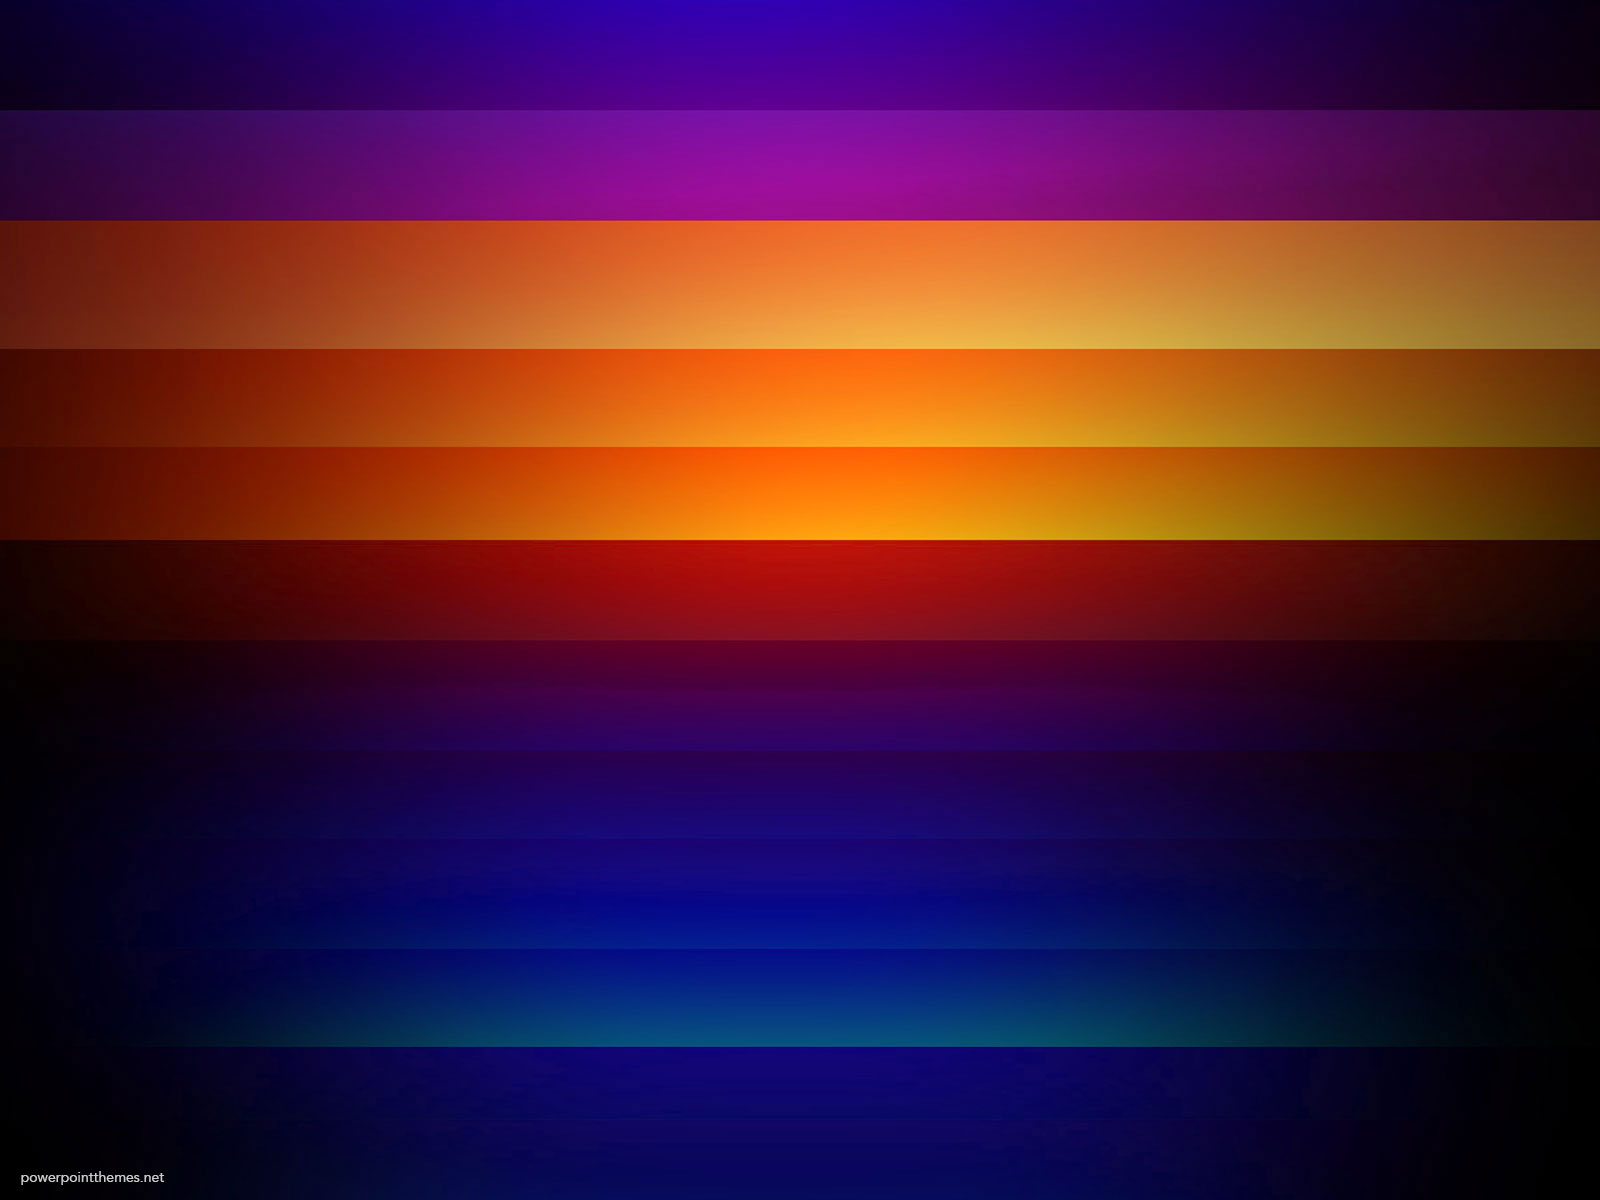 orange and purple backgrounds